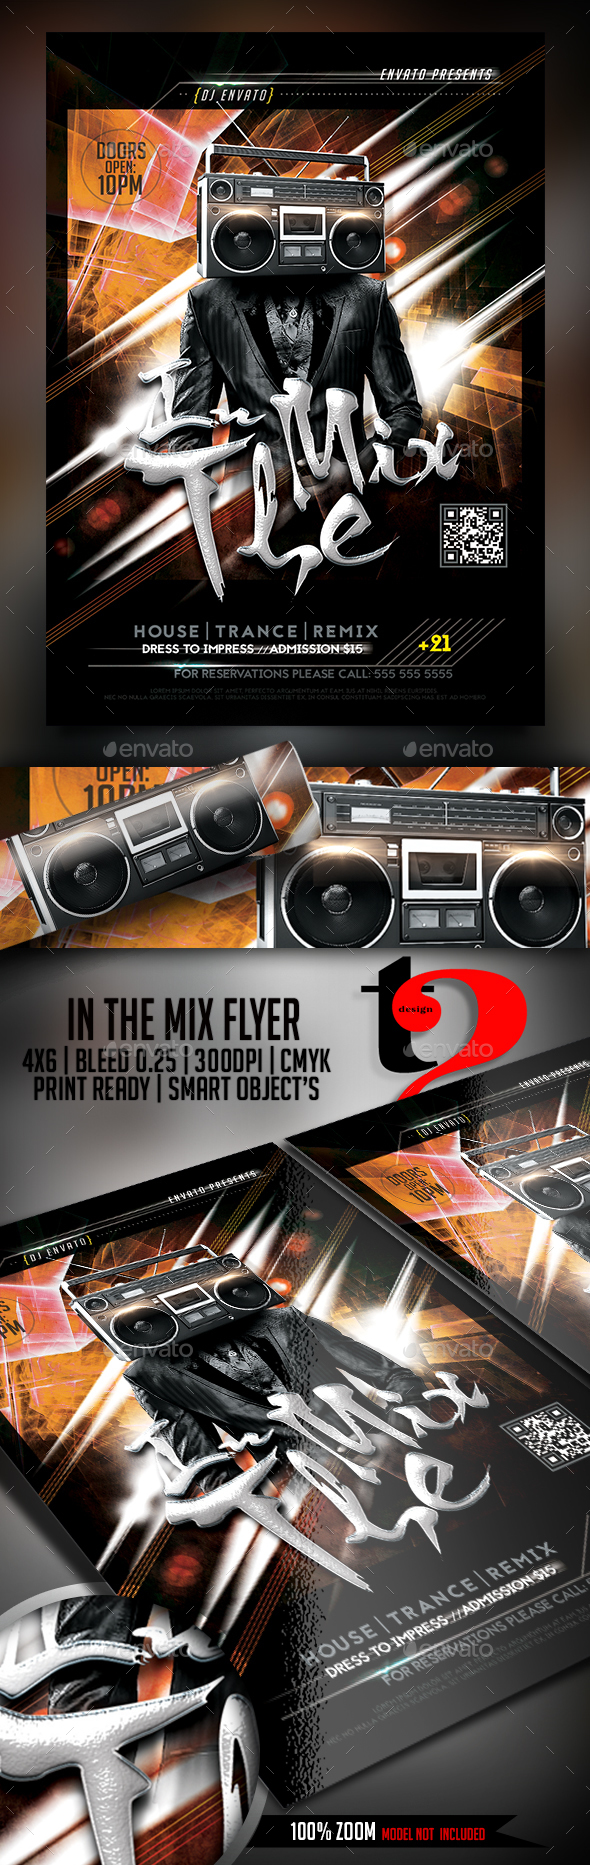 In The Mix Flyer Template | Flyer template, Event flyers and Graphics